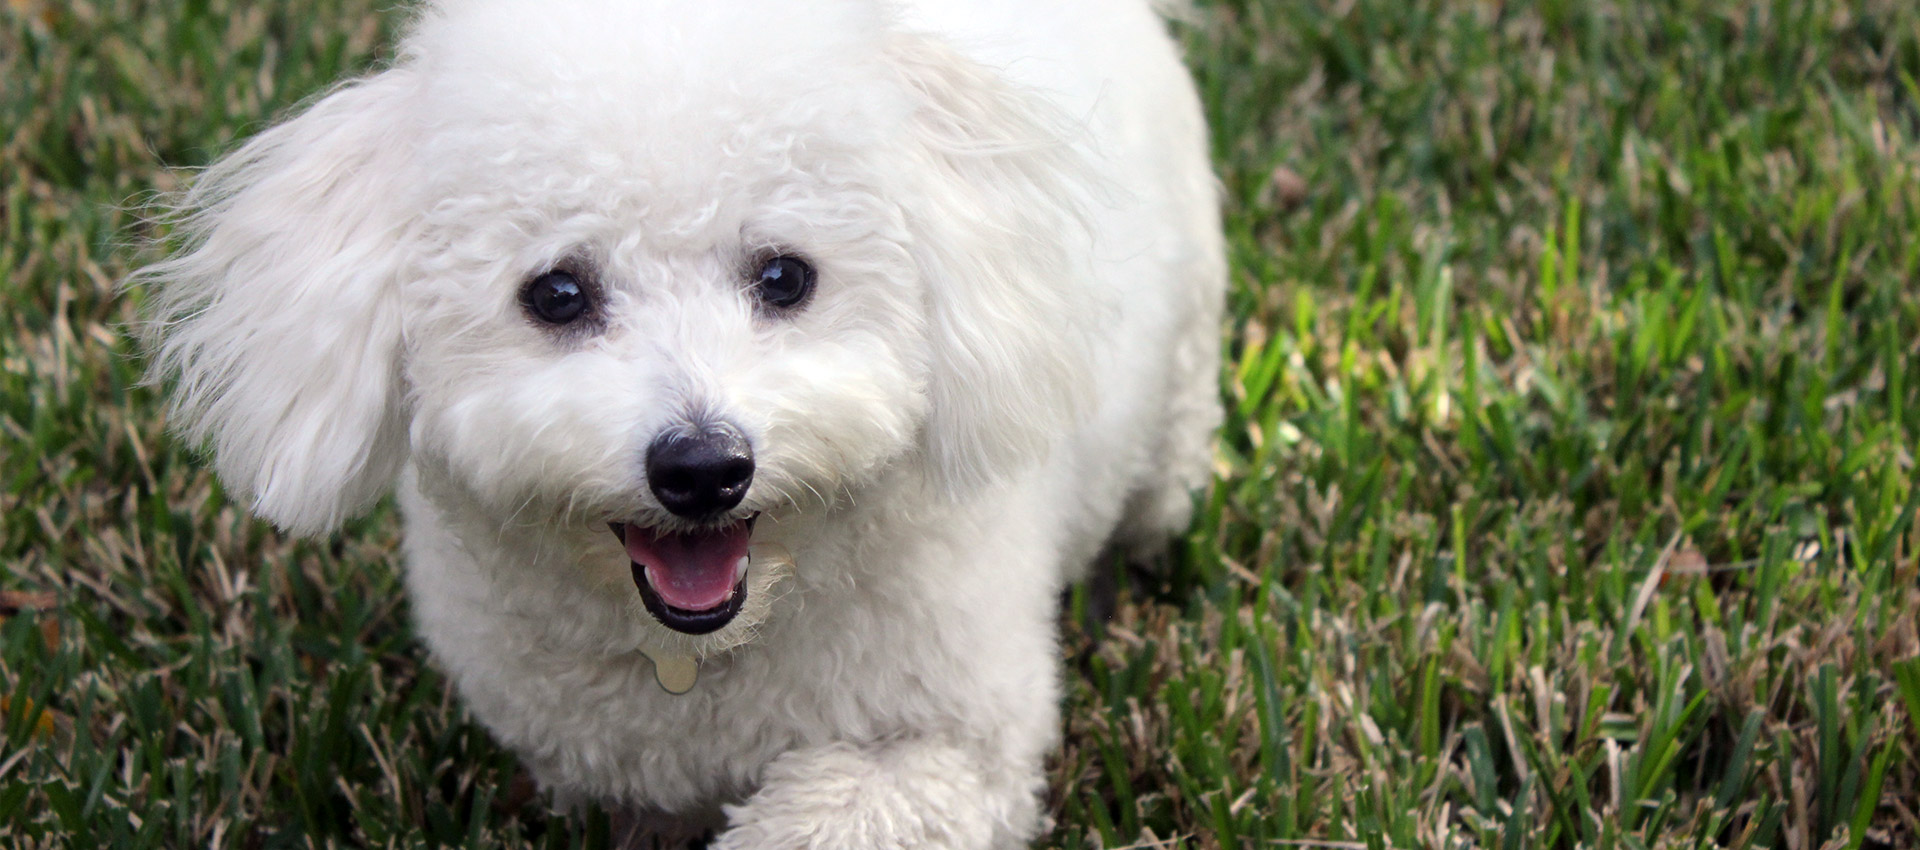 A Refined Canine: Dog Training Services, Puppy Training Services and Dog Boarding in Austin, Round Rock and Georgetown